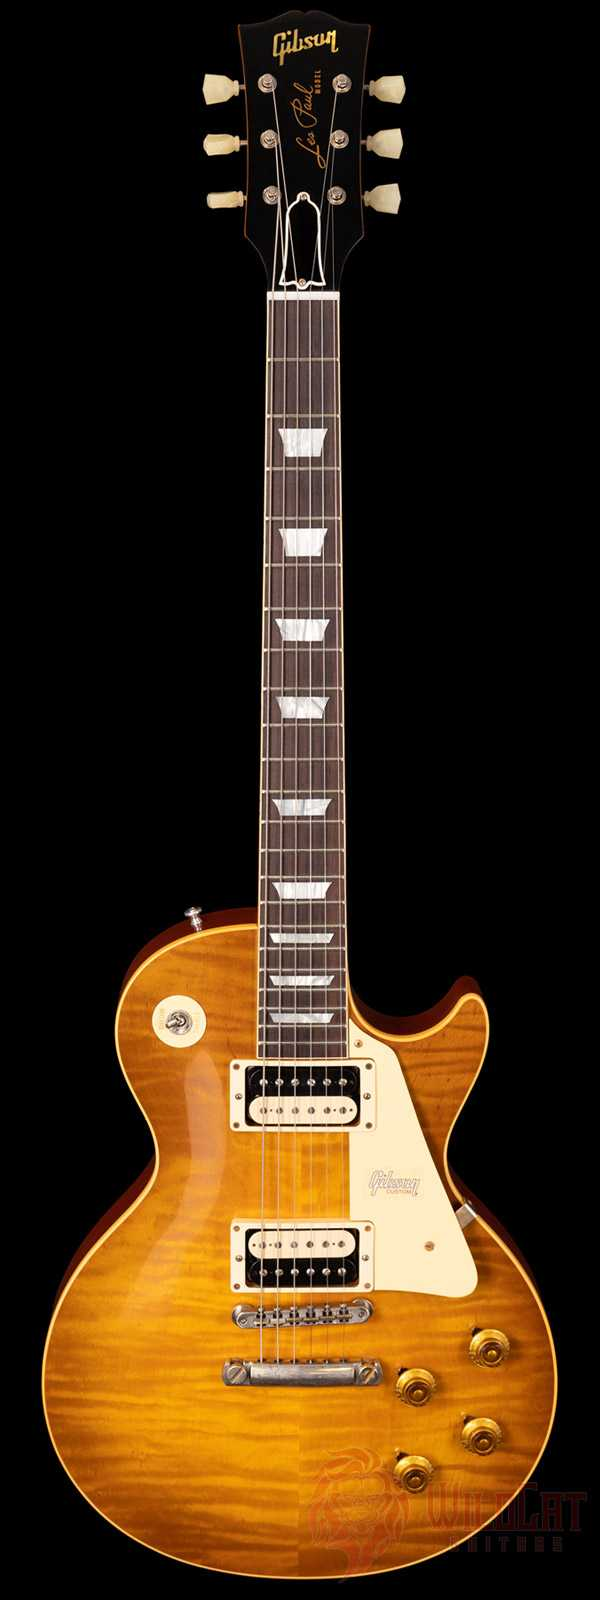 Gibson Custom Shop 1959 Les Paul Standard with Brazilian Fretboard VOS Double Dirty Lemon